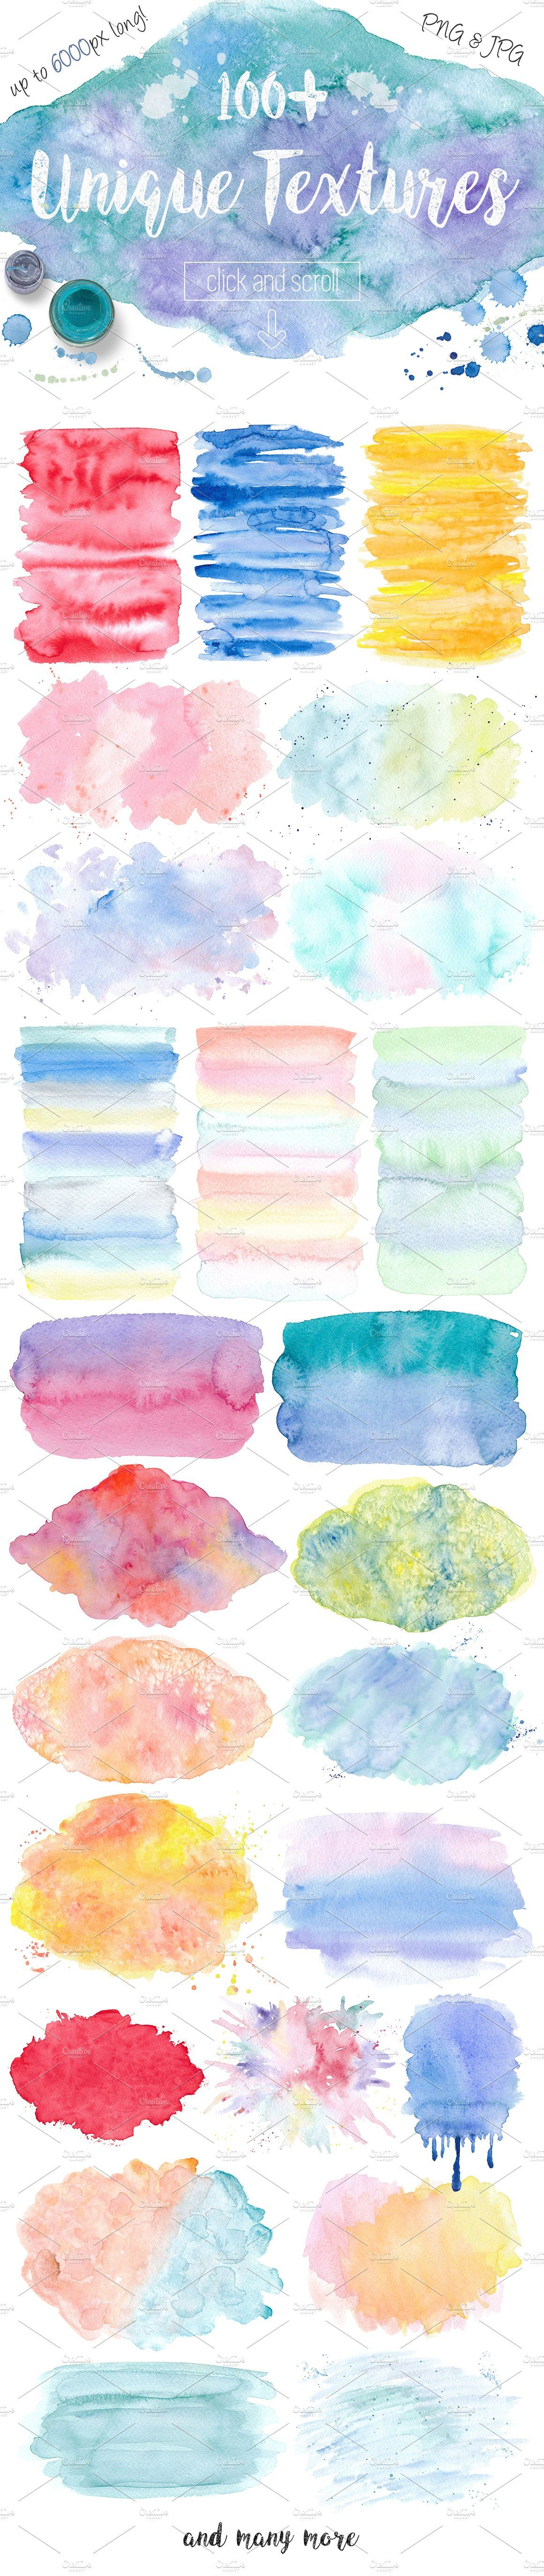 This Beautiful Watercolor Design Pack Contains The Best Watercolor